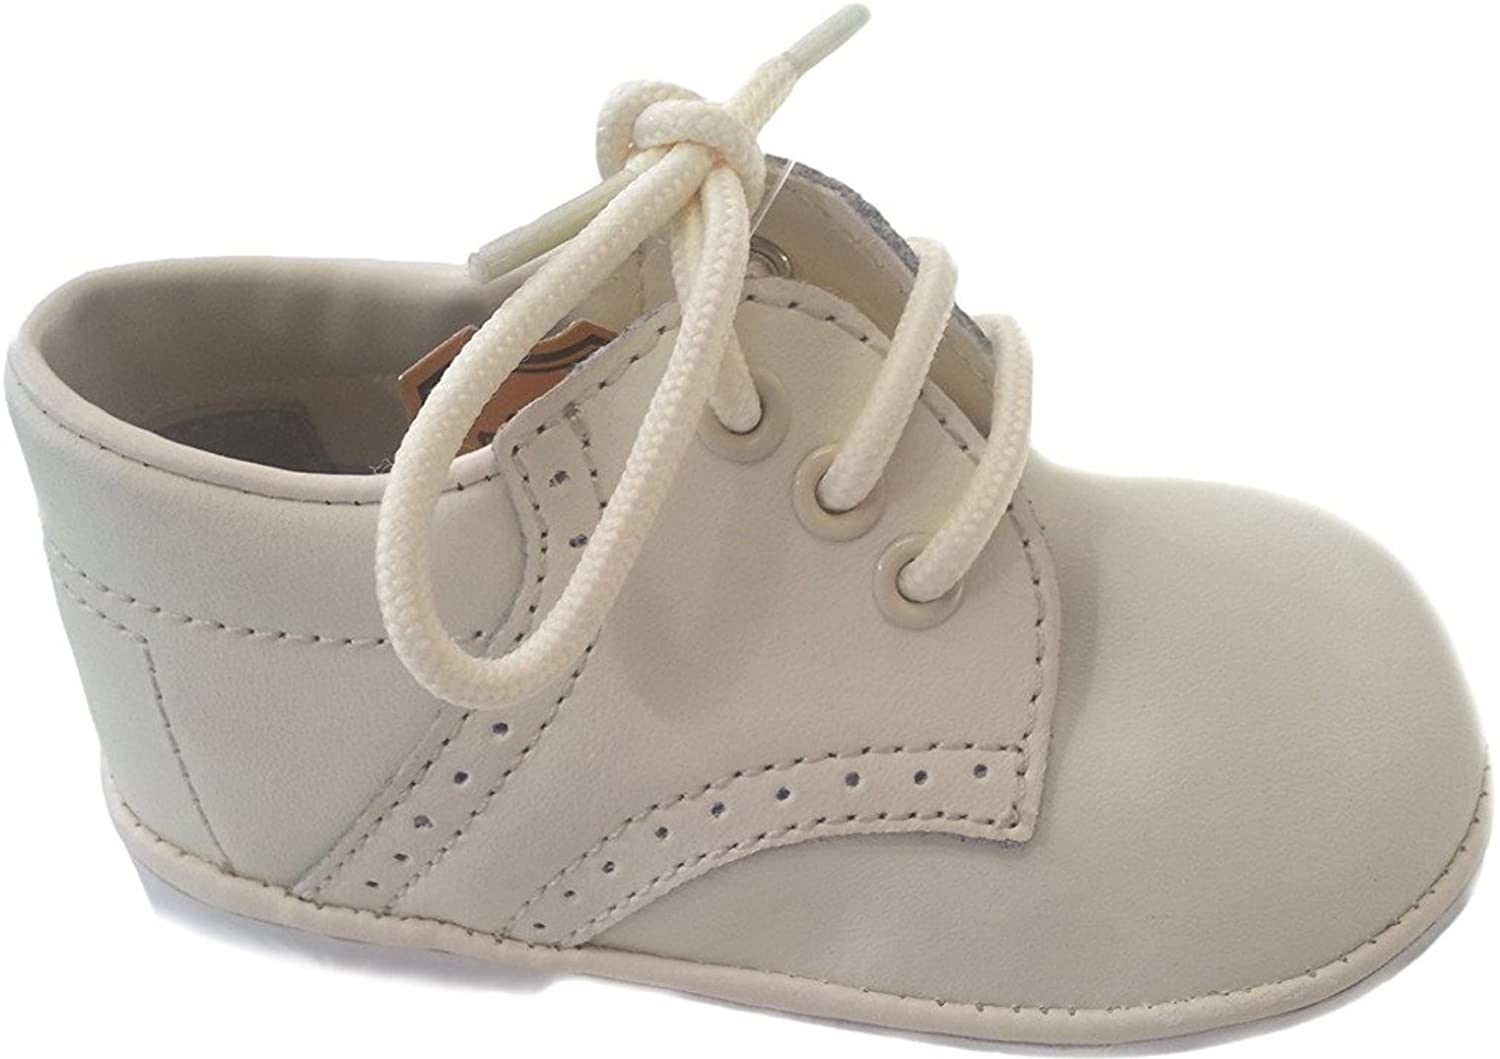 iGirldress Baby Boys Oxford Christening Shoes